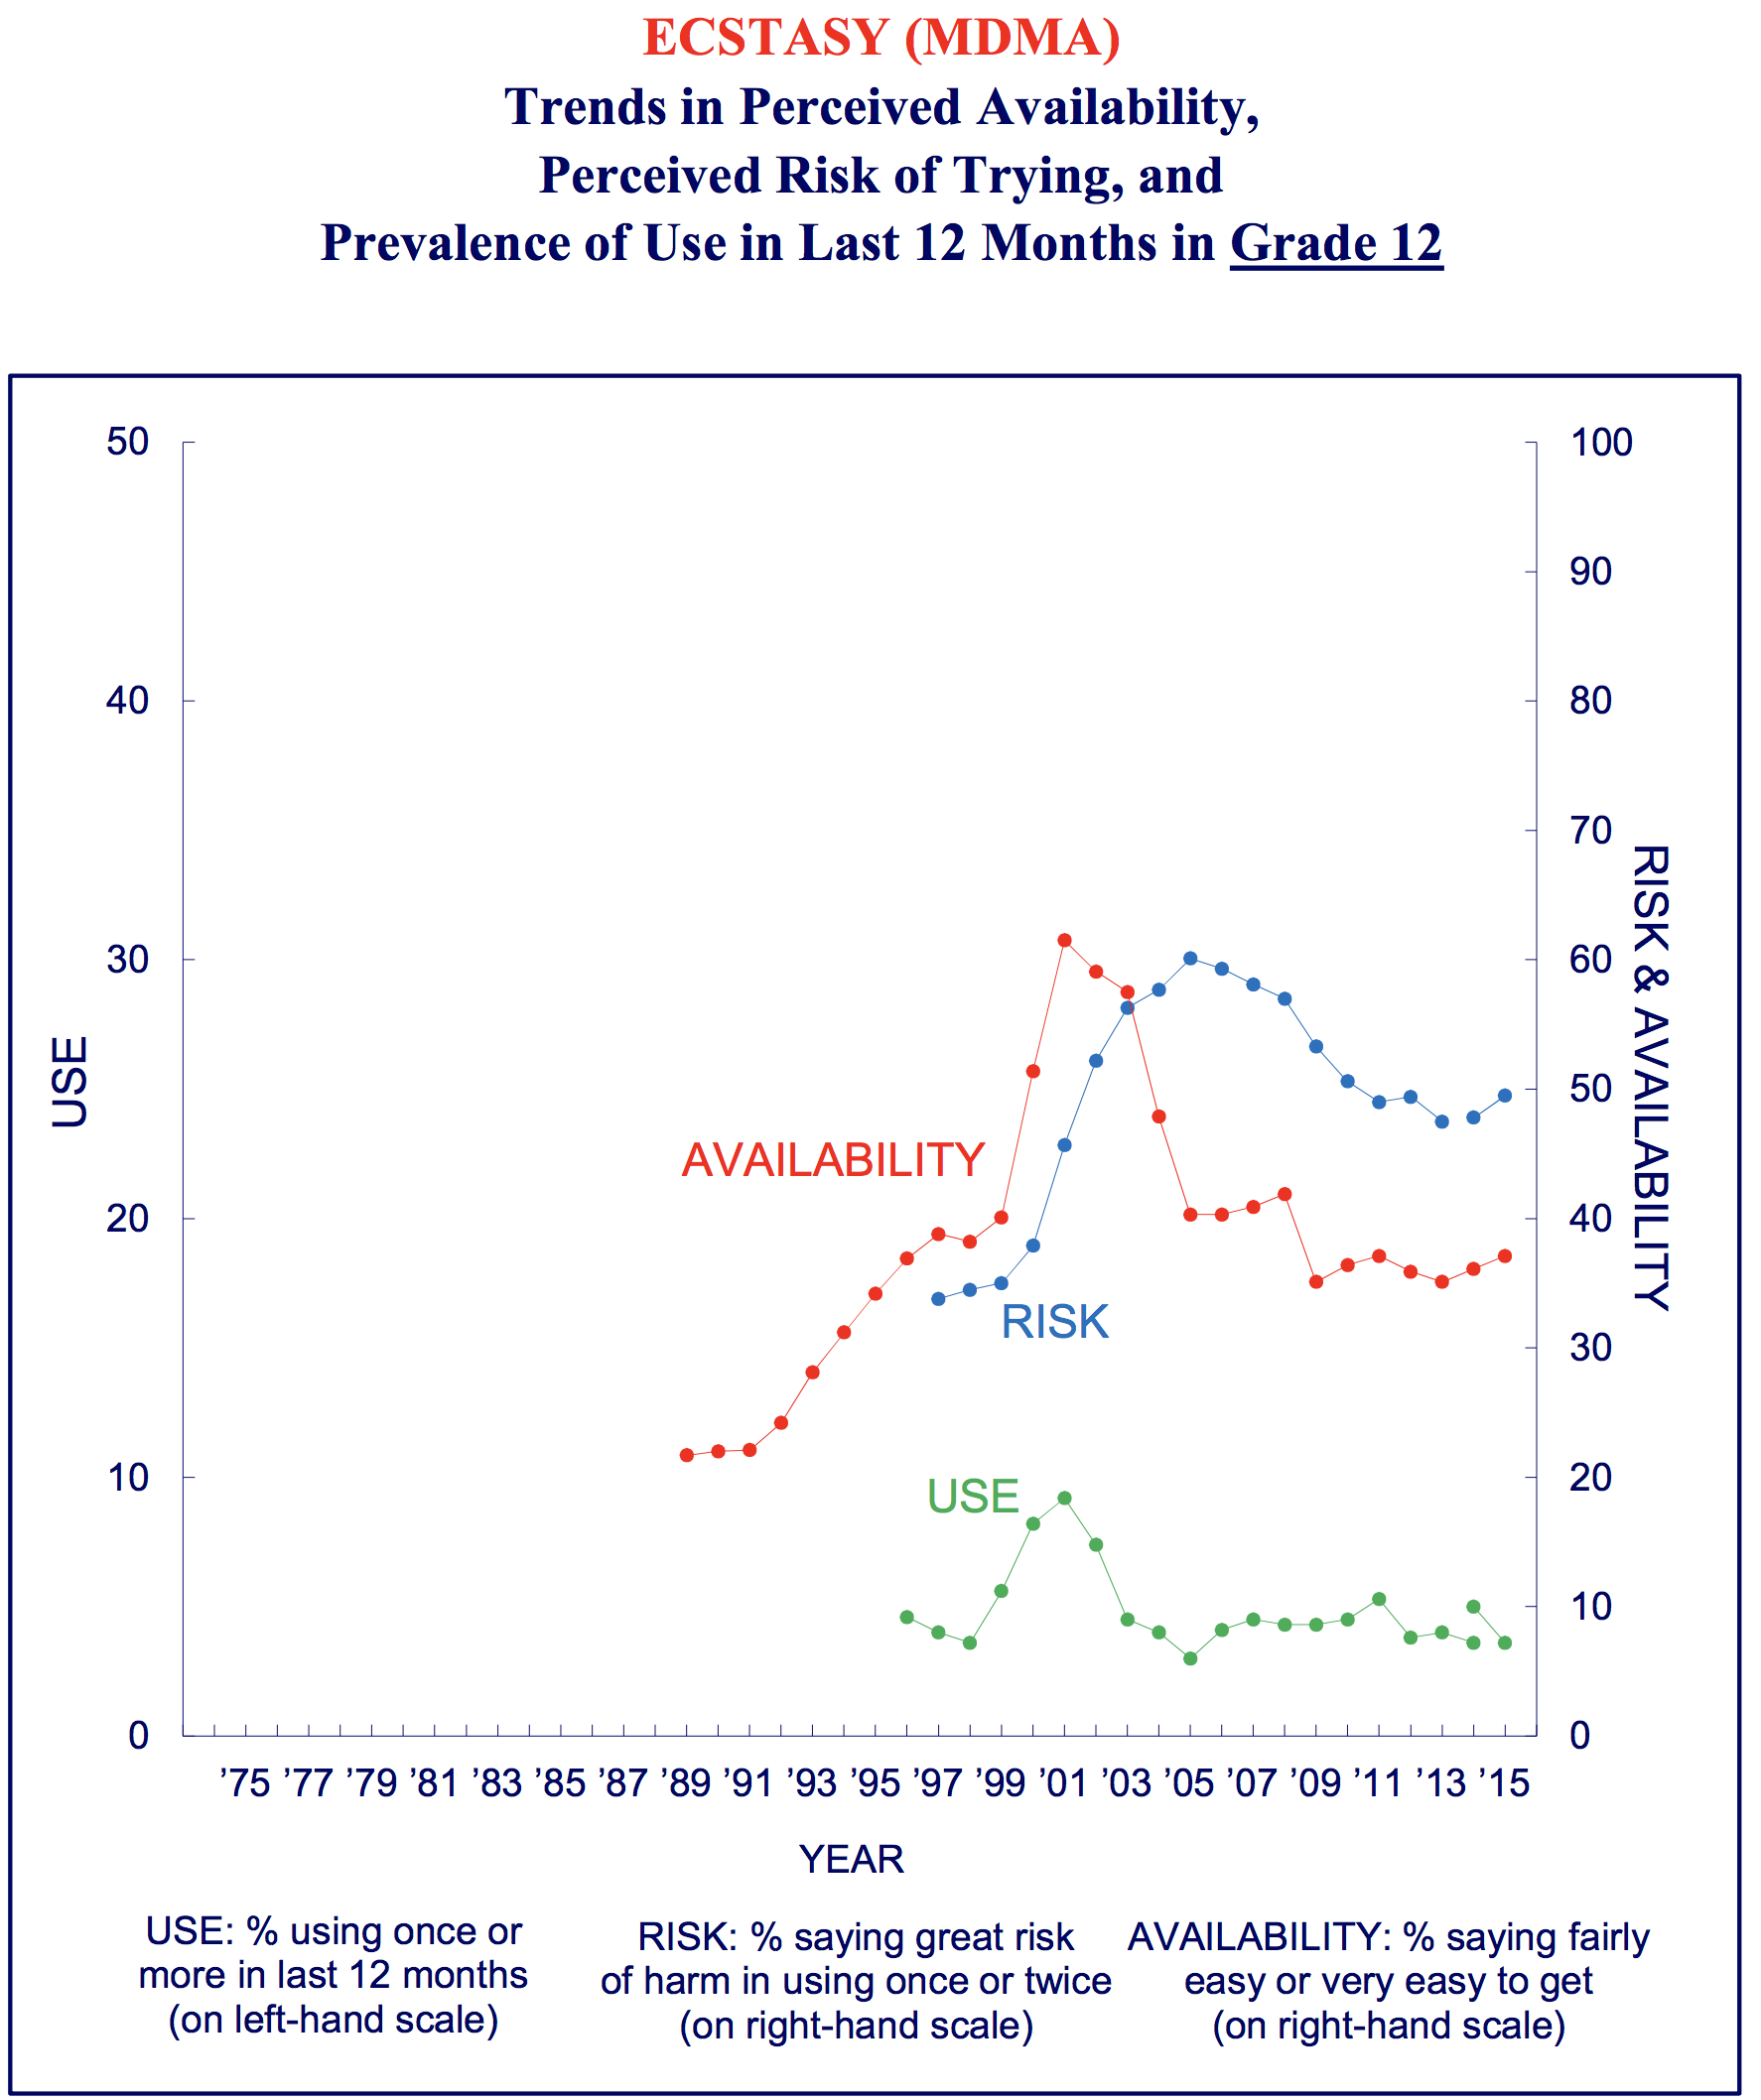 graph of trends over time in perceived harmfulness of mdmda molly ecstasy use by young adults